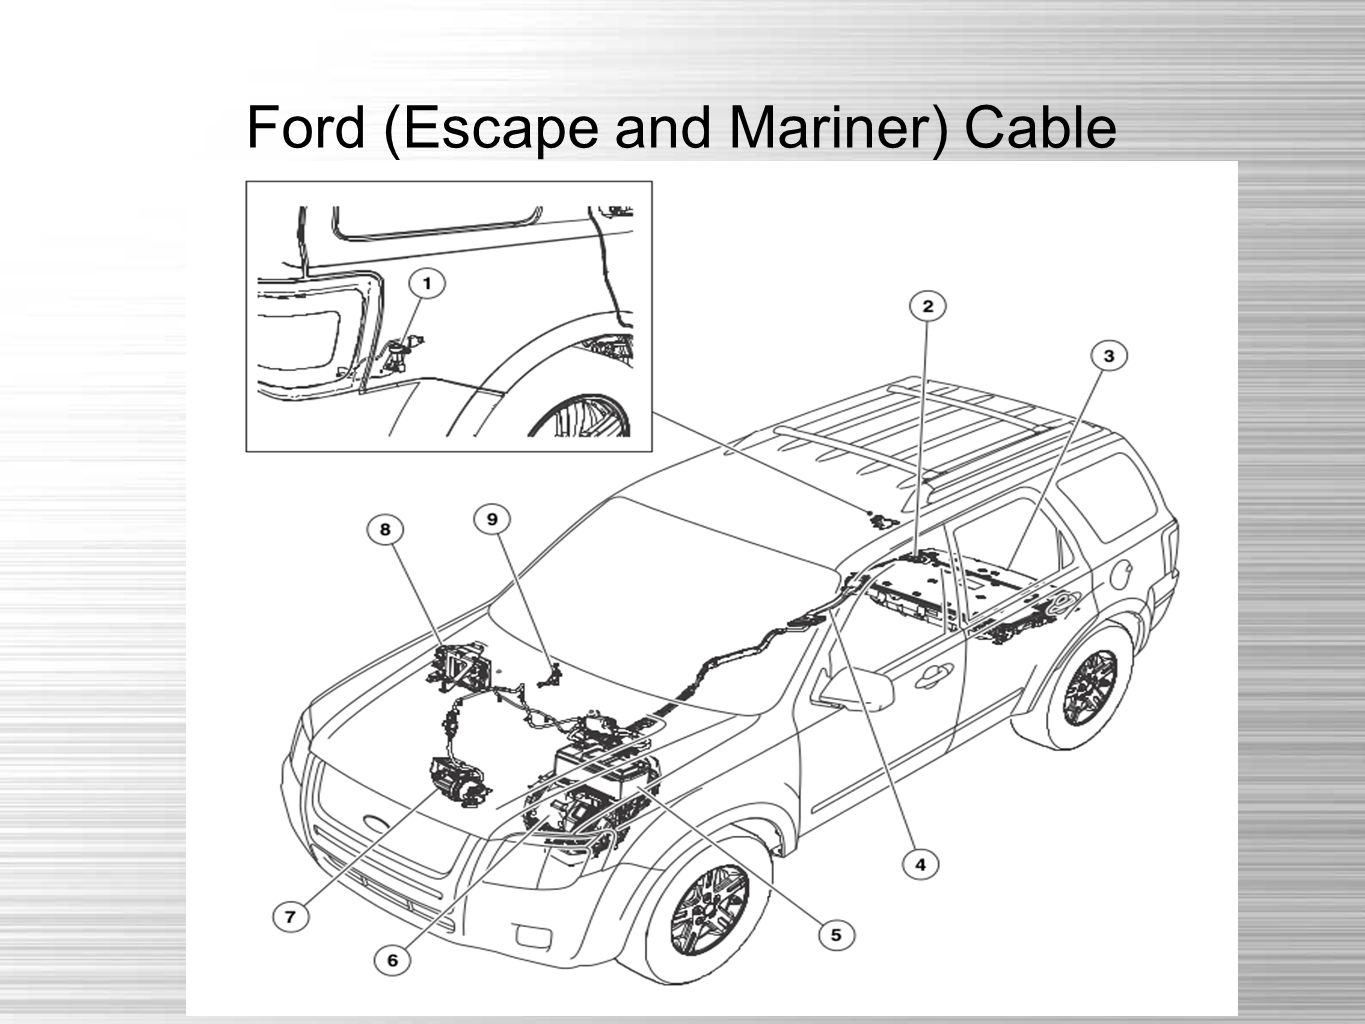 Ford (Escape and Mariner) Cable